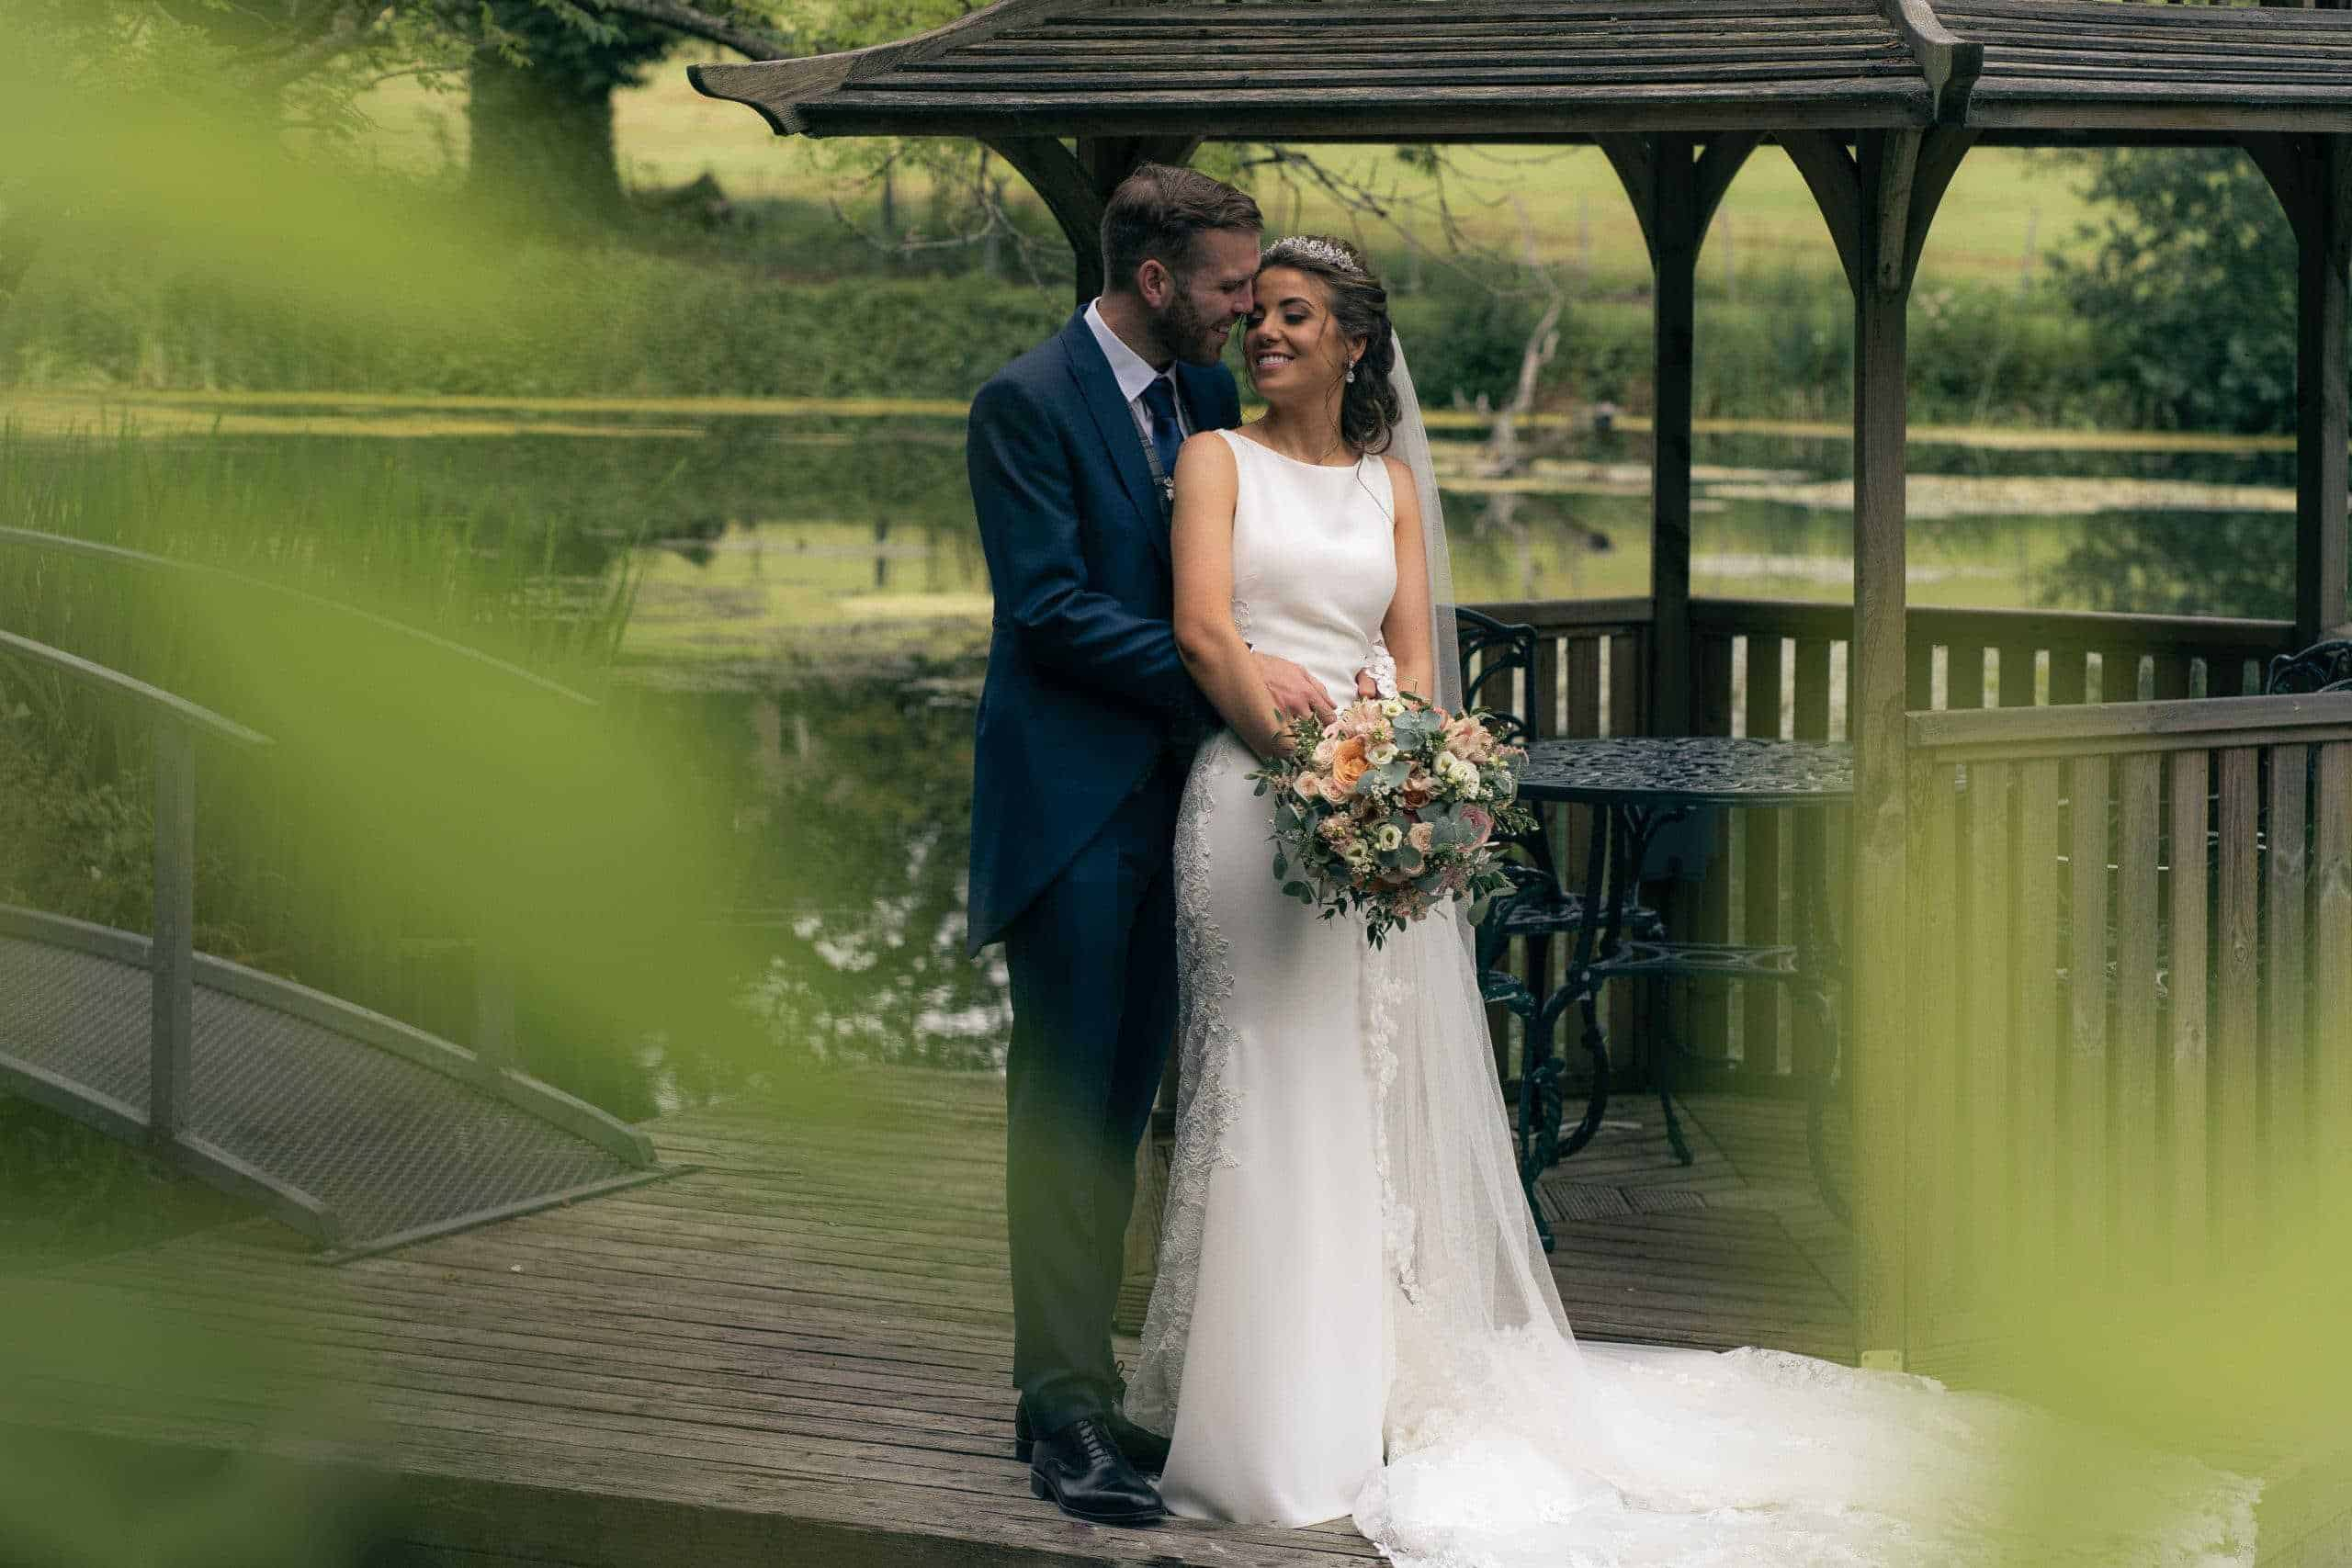 Wedding Video Service in Ireland